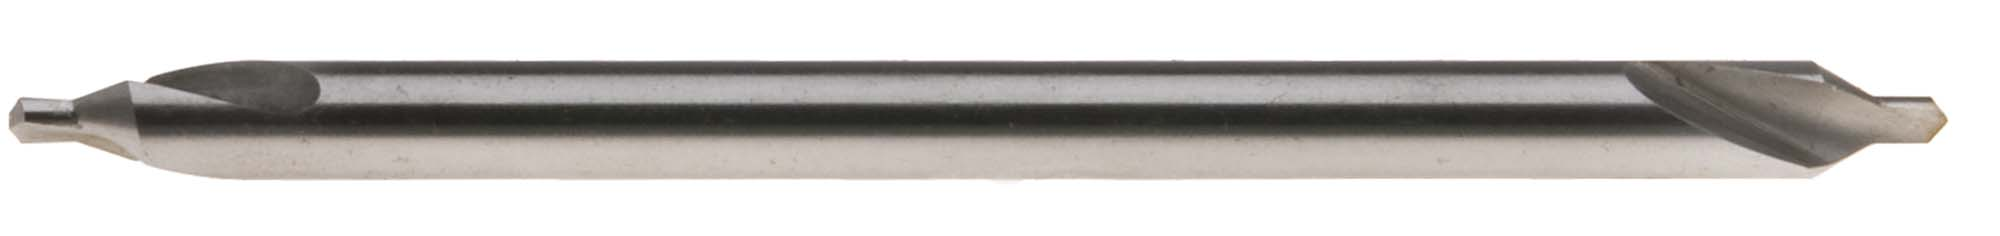 "CDL-1-5  #1x5"" Long Combined Drill and Countersink, High Speed Steel"